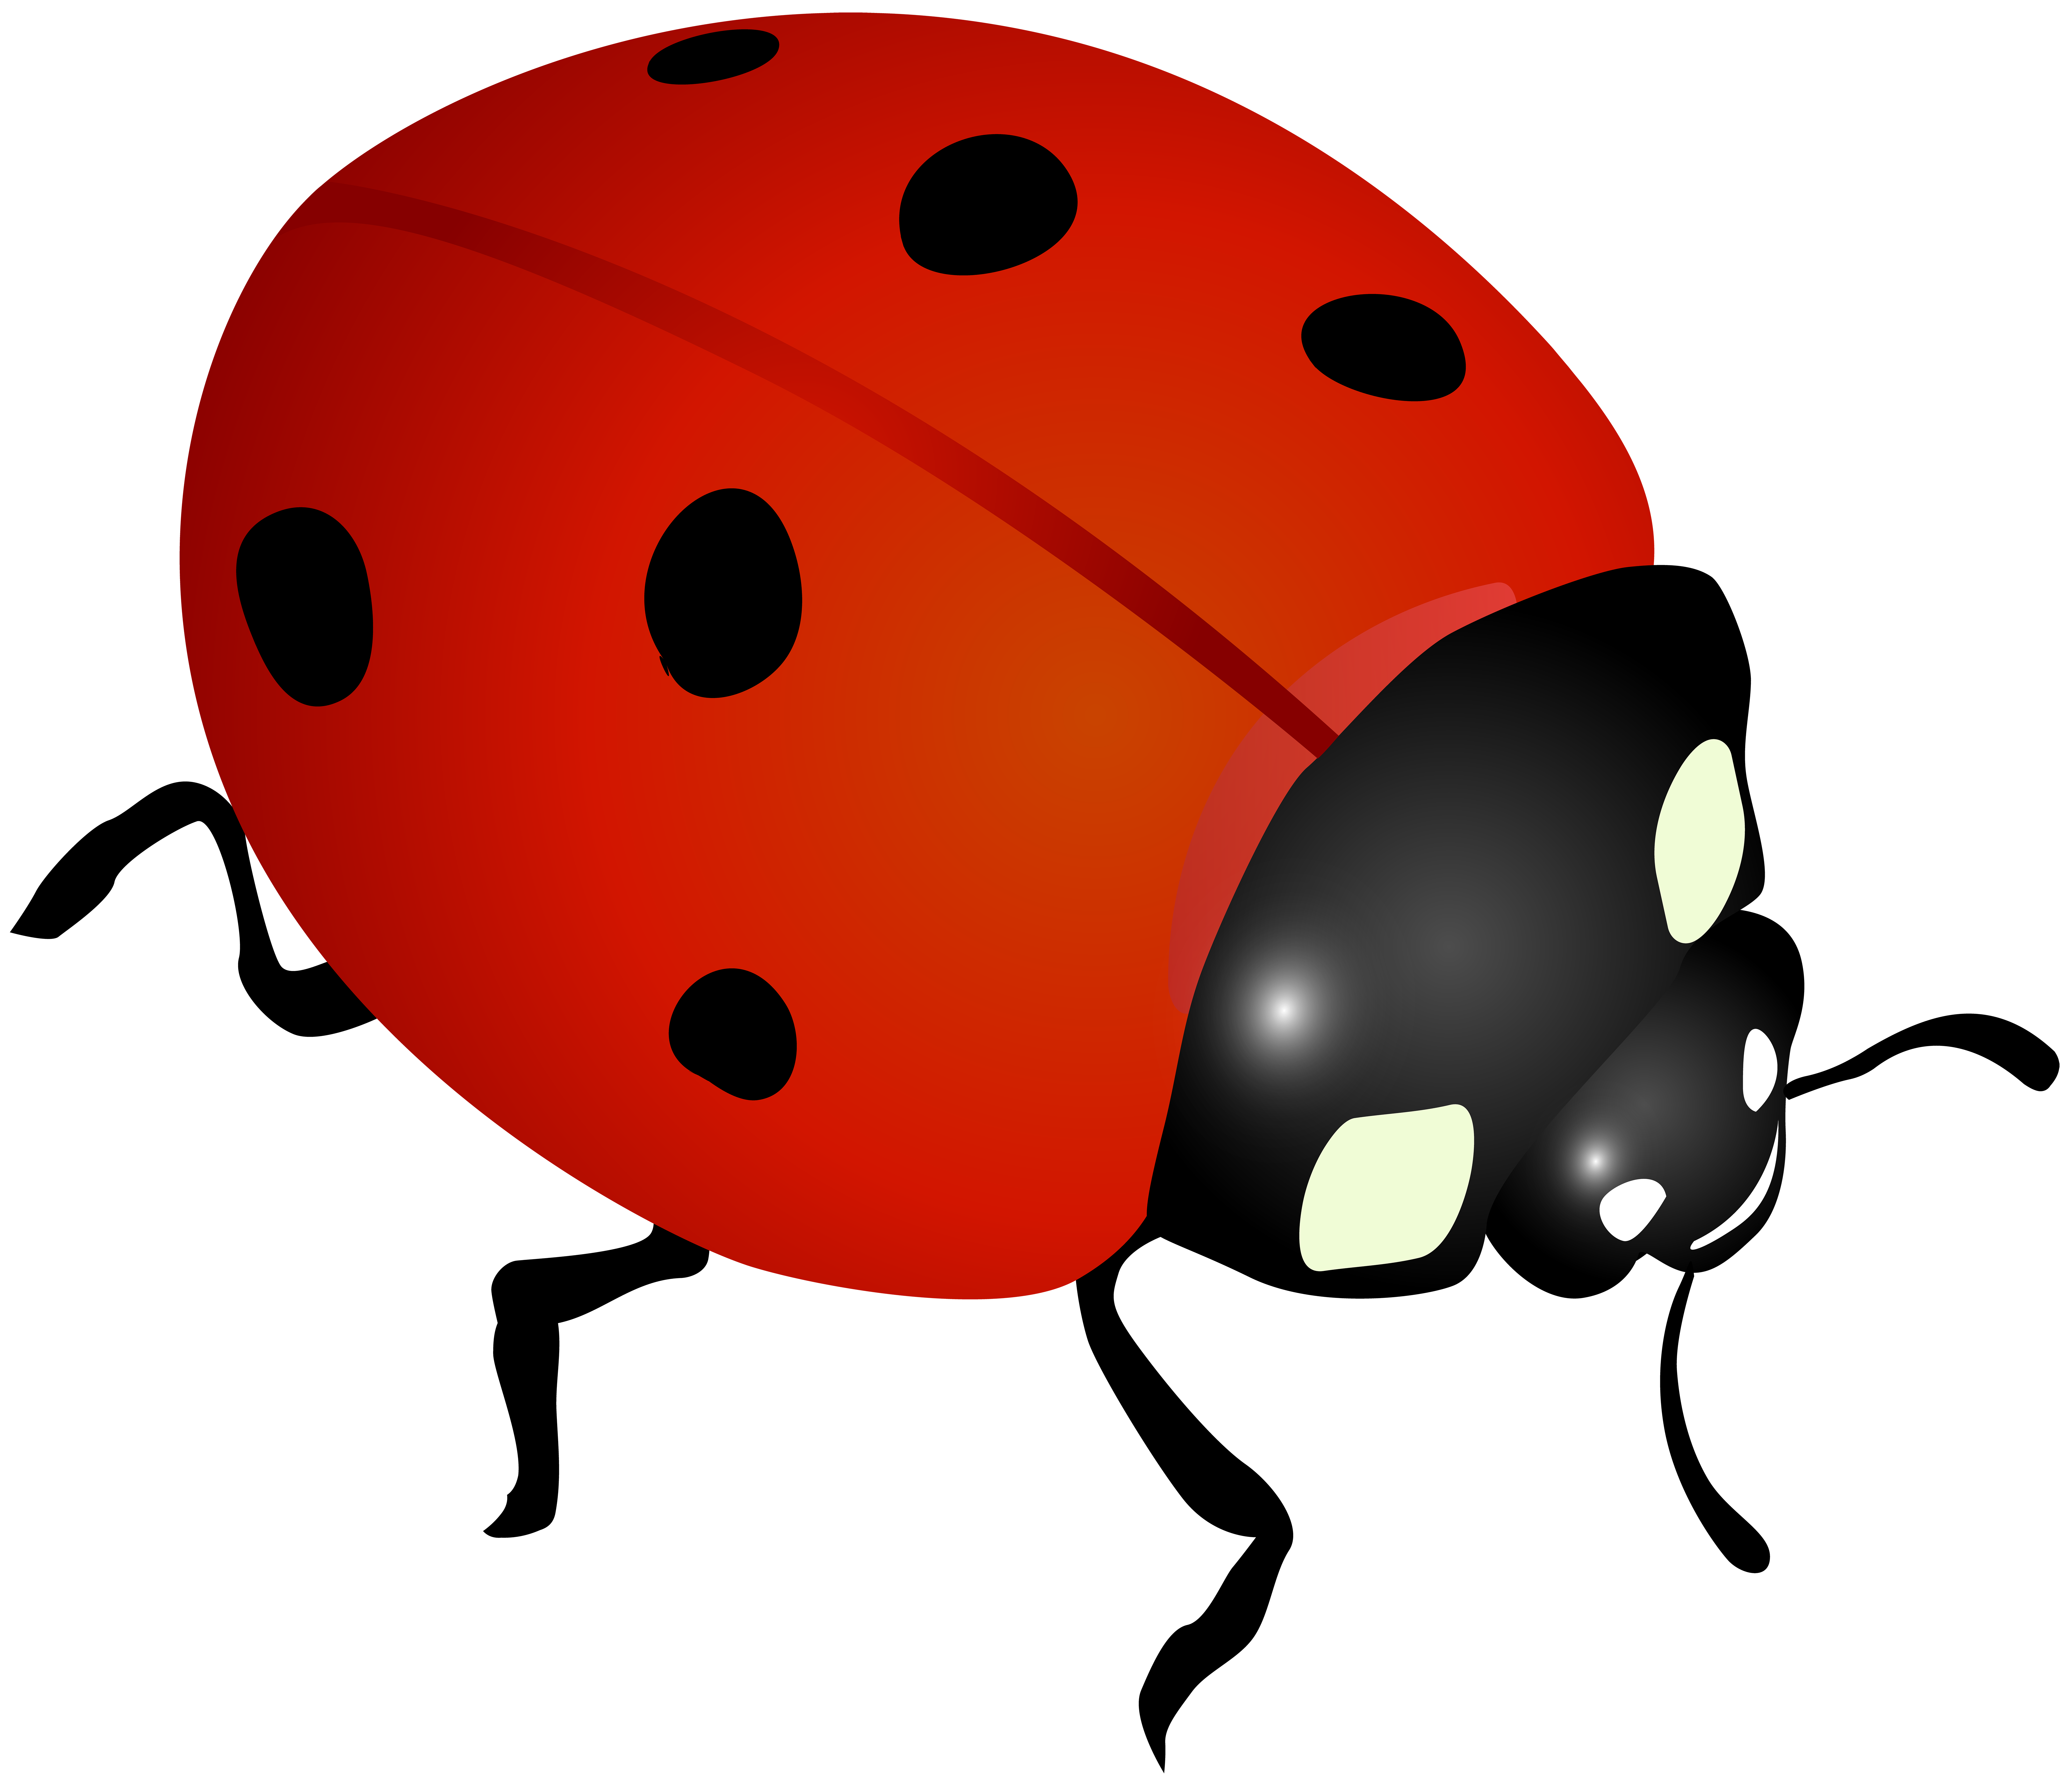 Ladybug pictures clipart svg transparent library Lady bug clipart clipart images gallery for free download | MyReal ... svg transparent library